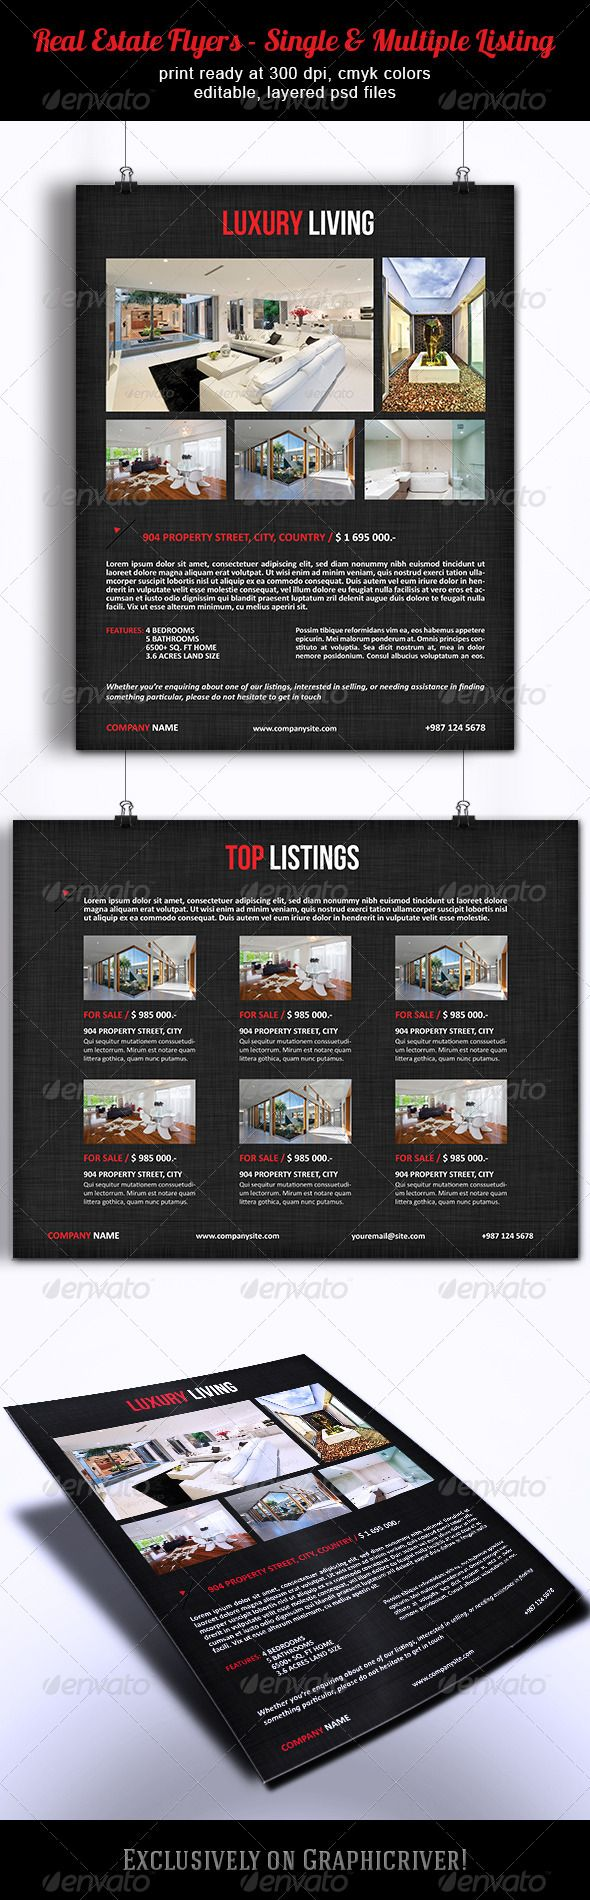 best images about flyer the flyer lakes and real estate flyers single multiple listing